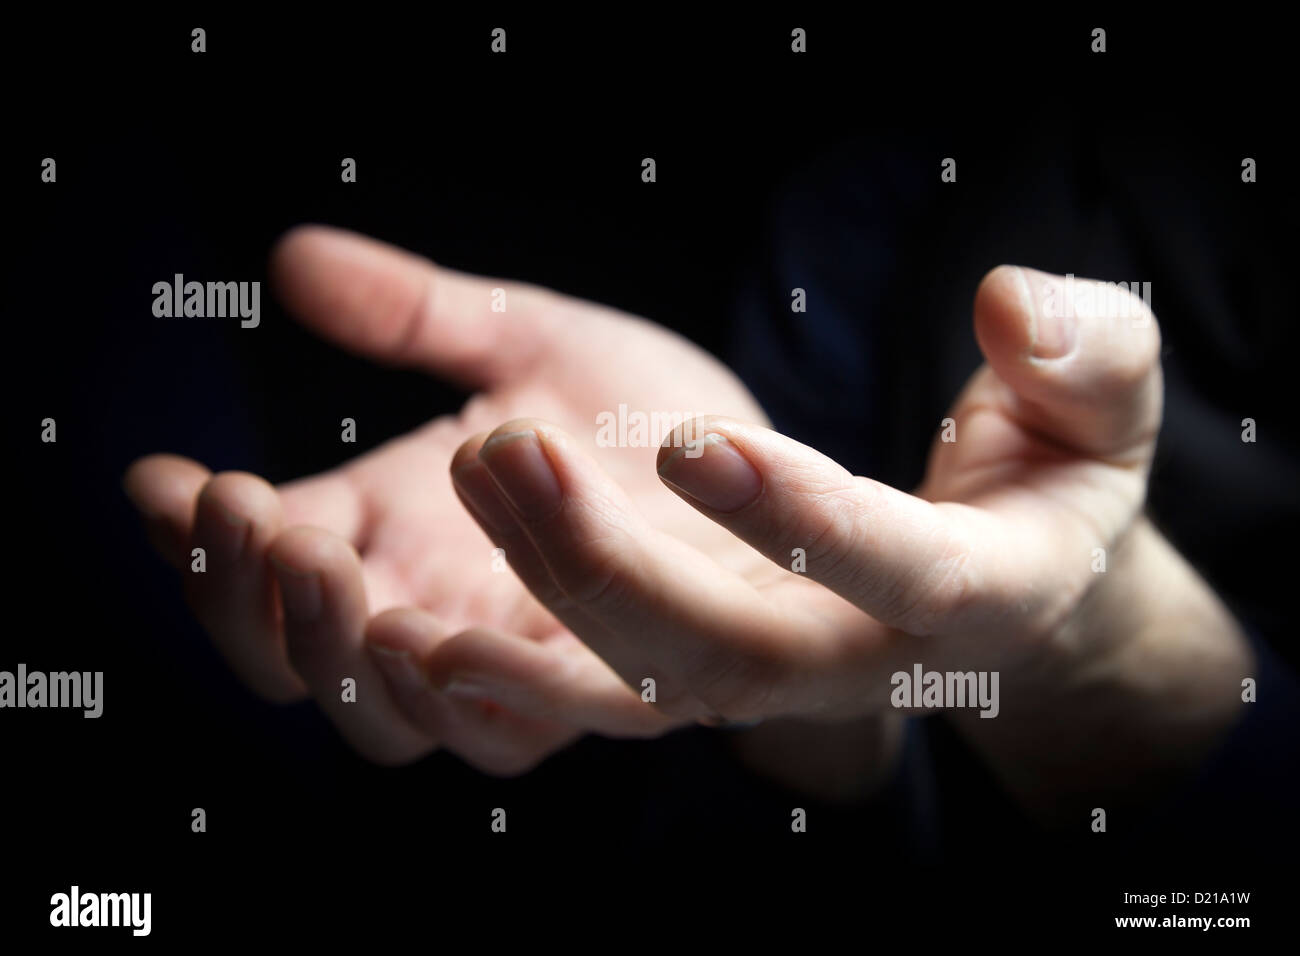 Two hands outstretched begging. - Stock Image